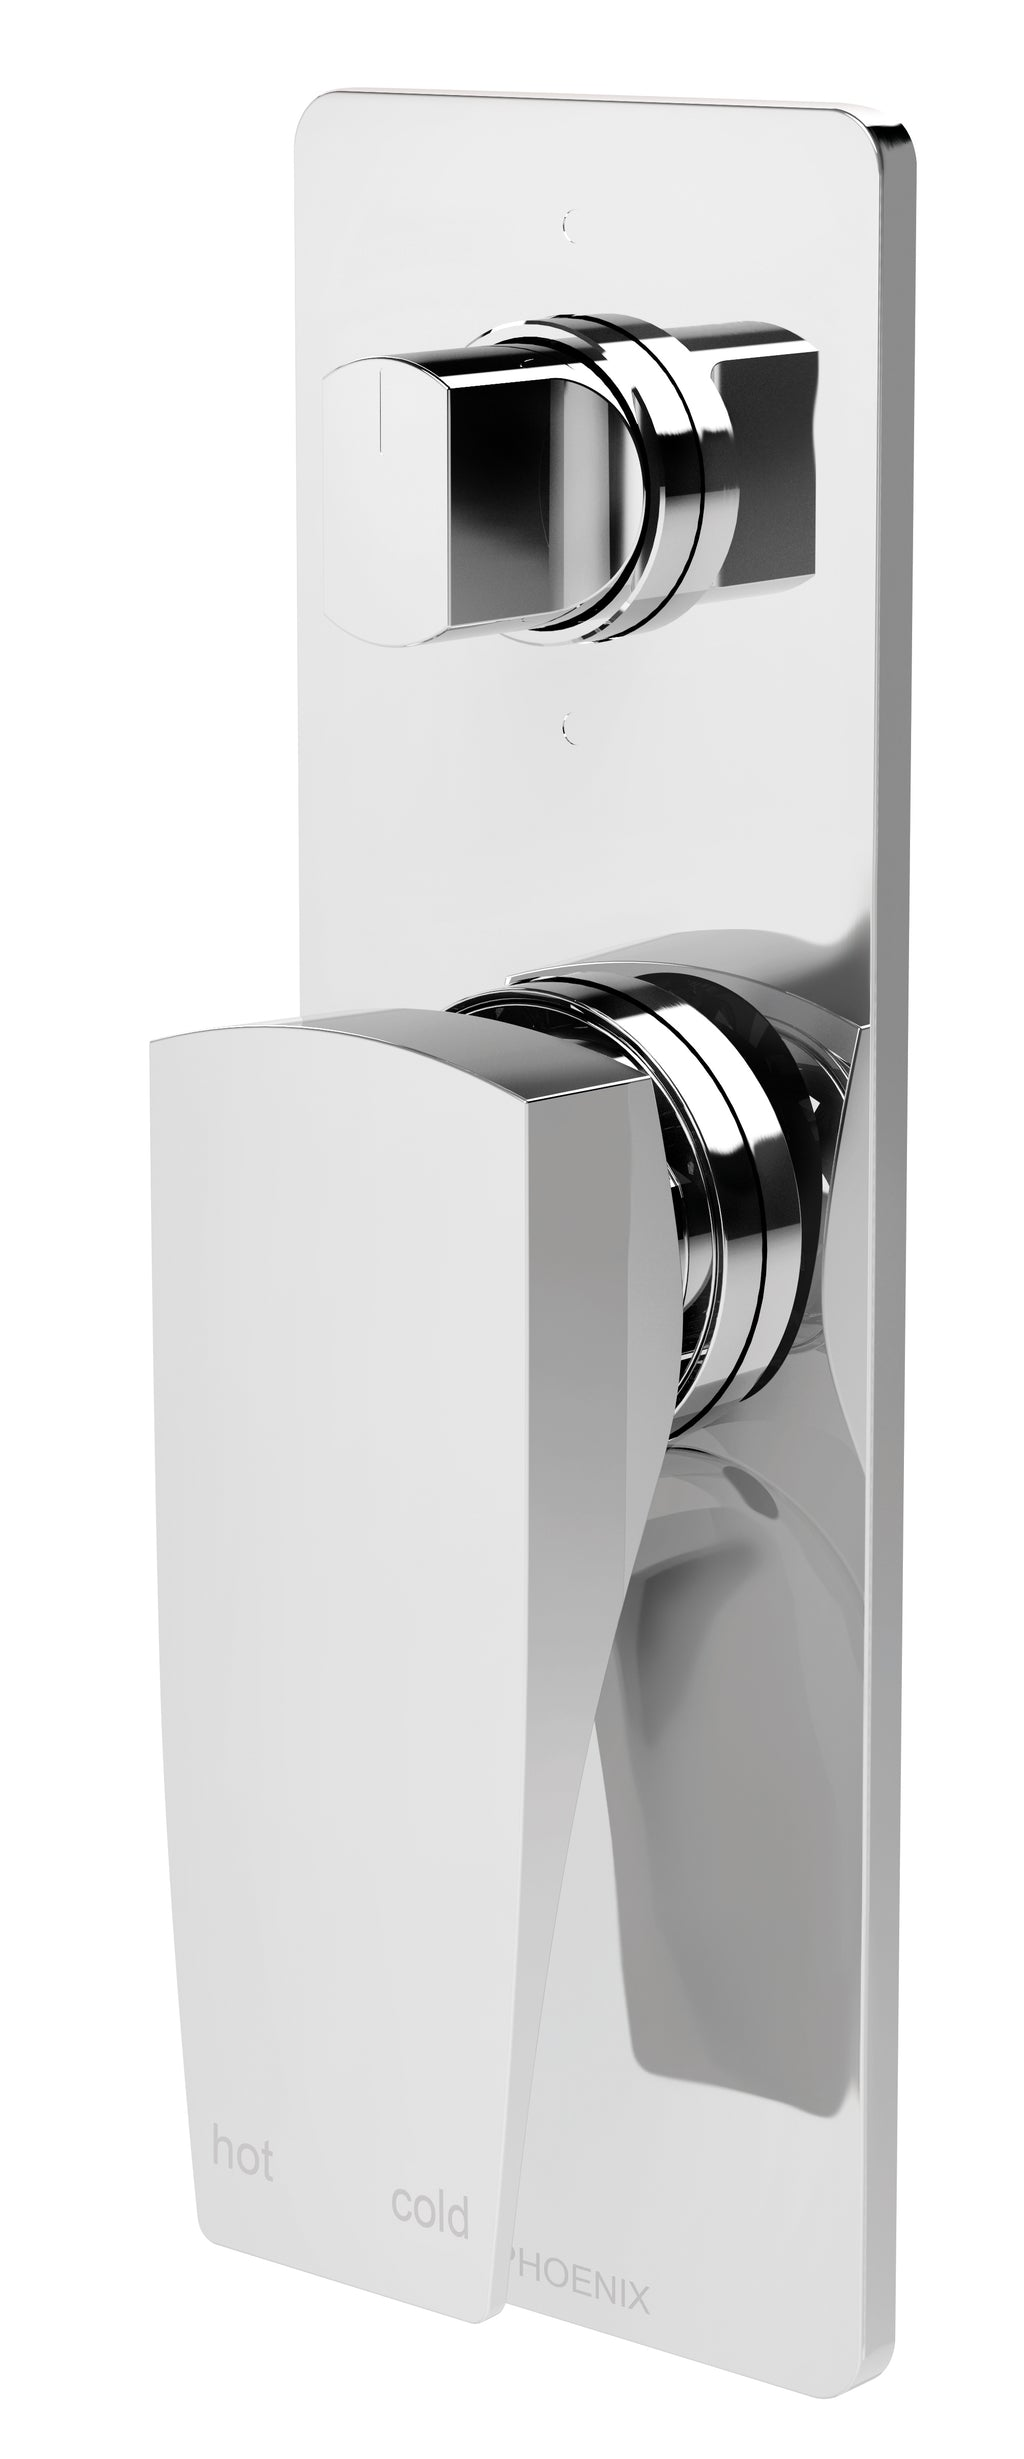 Argo Shower / Bath Diverter Mixer (Chrome)